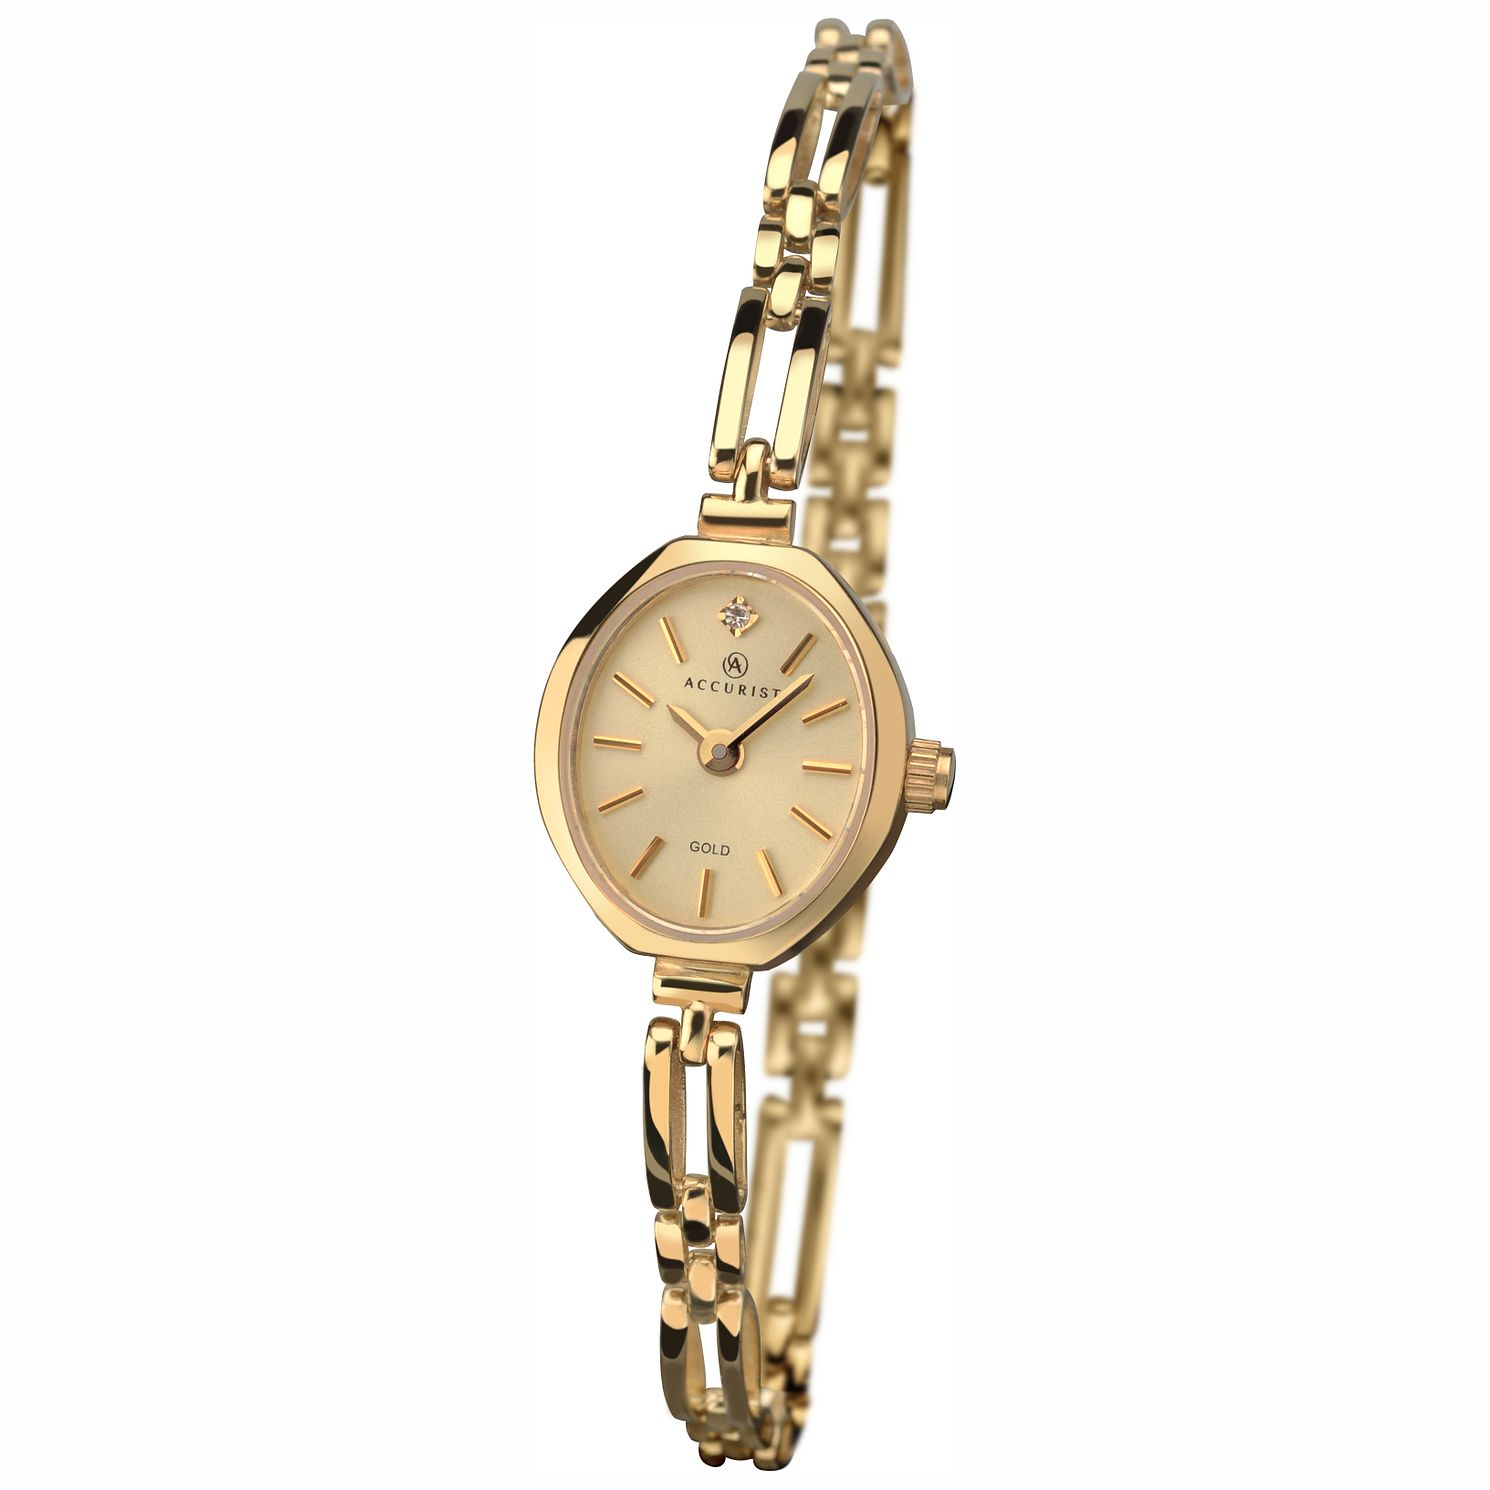 Accurist 9ct Gold Oval Champagne Dial Bracelet Watch - Product number 1084305